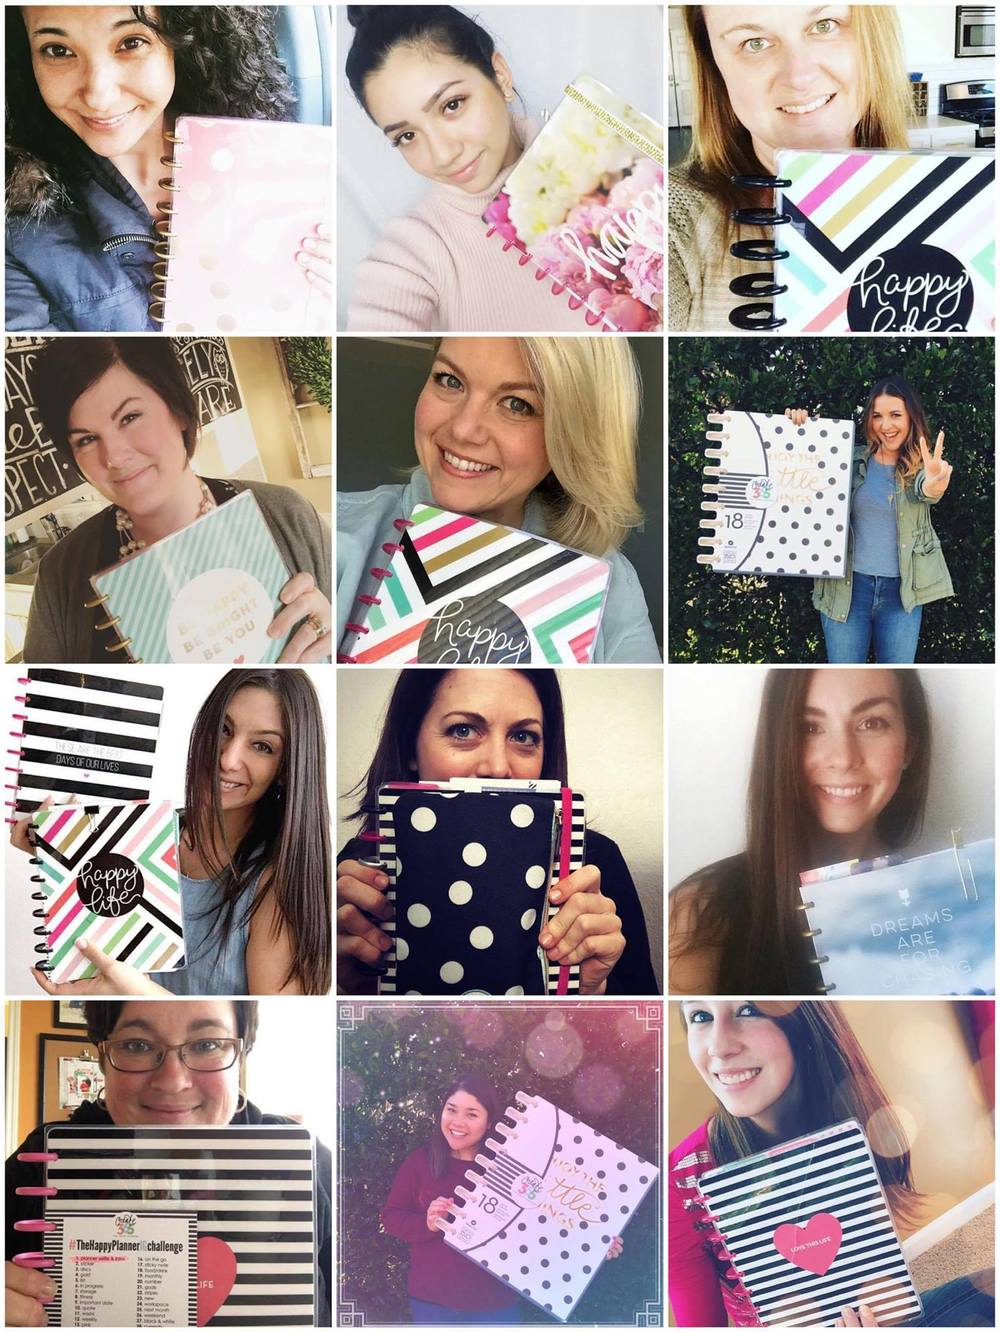 the mambi team & their planner selfies:   @momruncraft  |  @paperprincess  |  @ajmcgarvey  |  @janna_wilson  |  @stephanie_fleming  |  @hannahjoyyyy  |  @amandarosezamp  |  @cultivatingcasie  |  @noviventure  |  @maryannmaldonado  |  @chantelle_plans  |  @megannxo27  | Can you spot the new Happy Planners™?